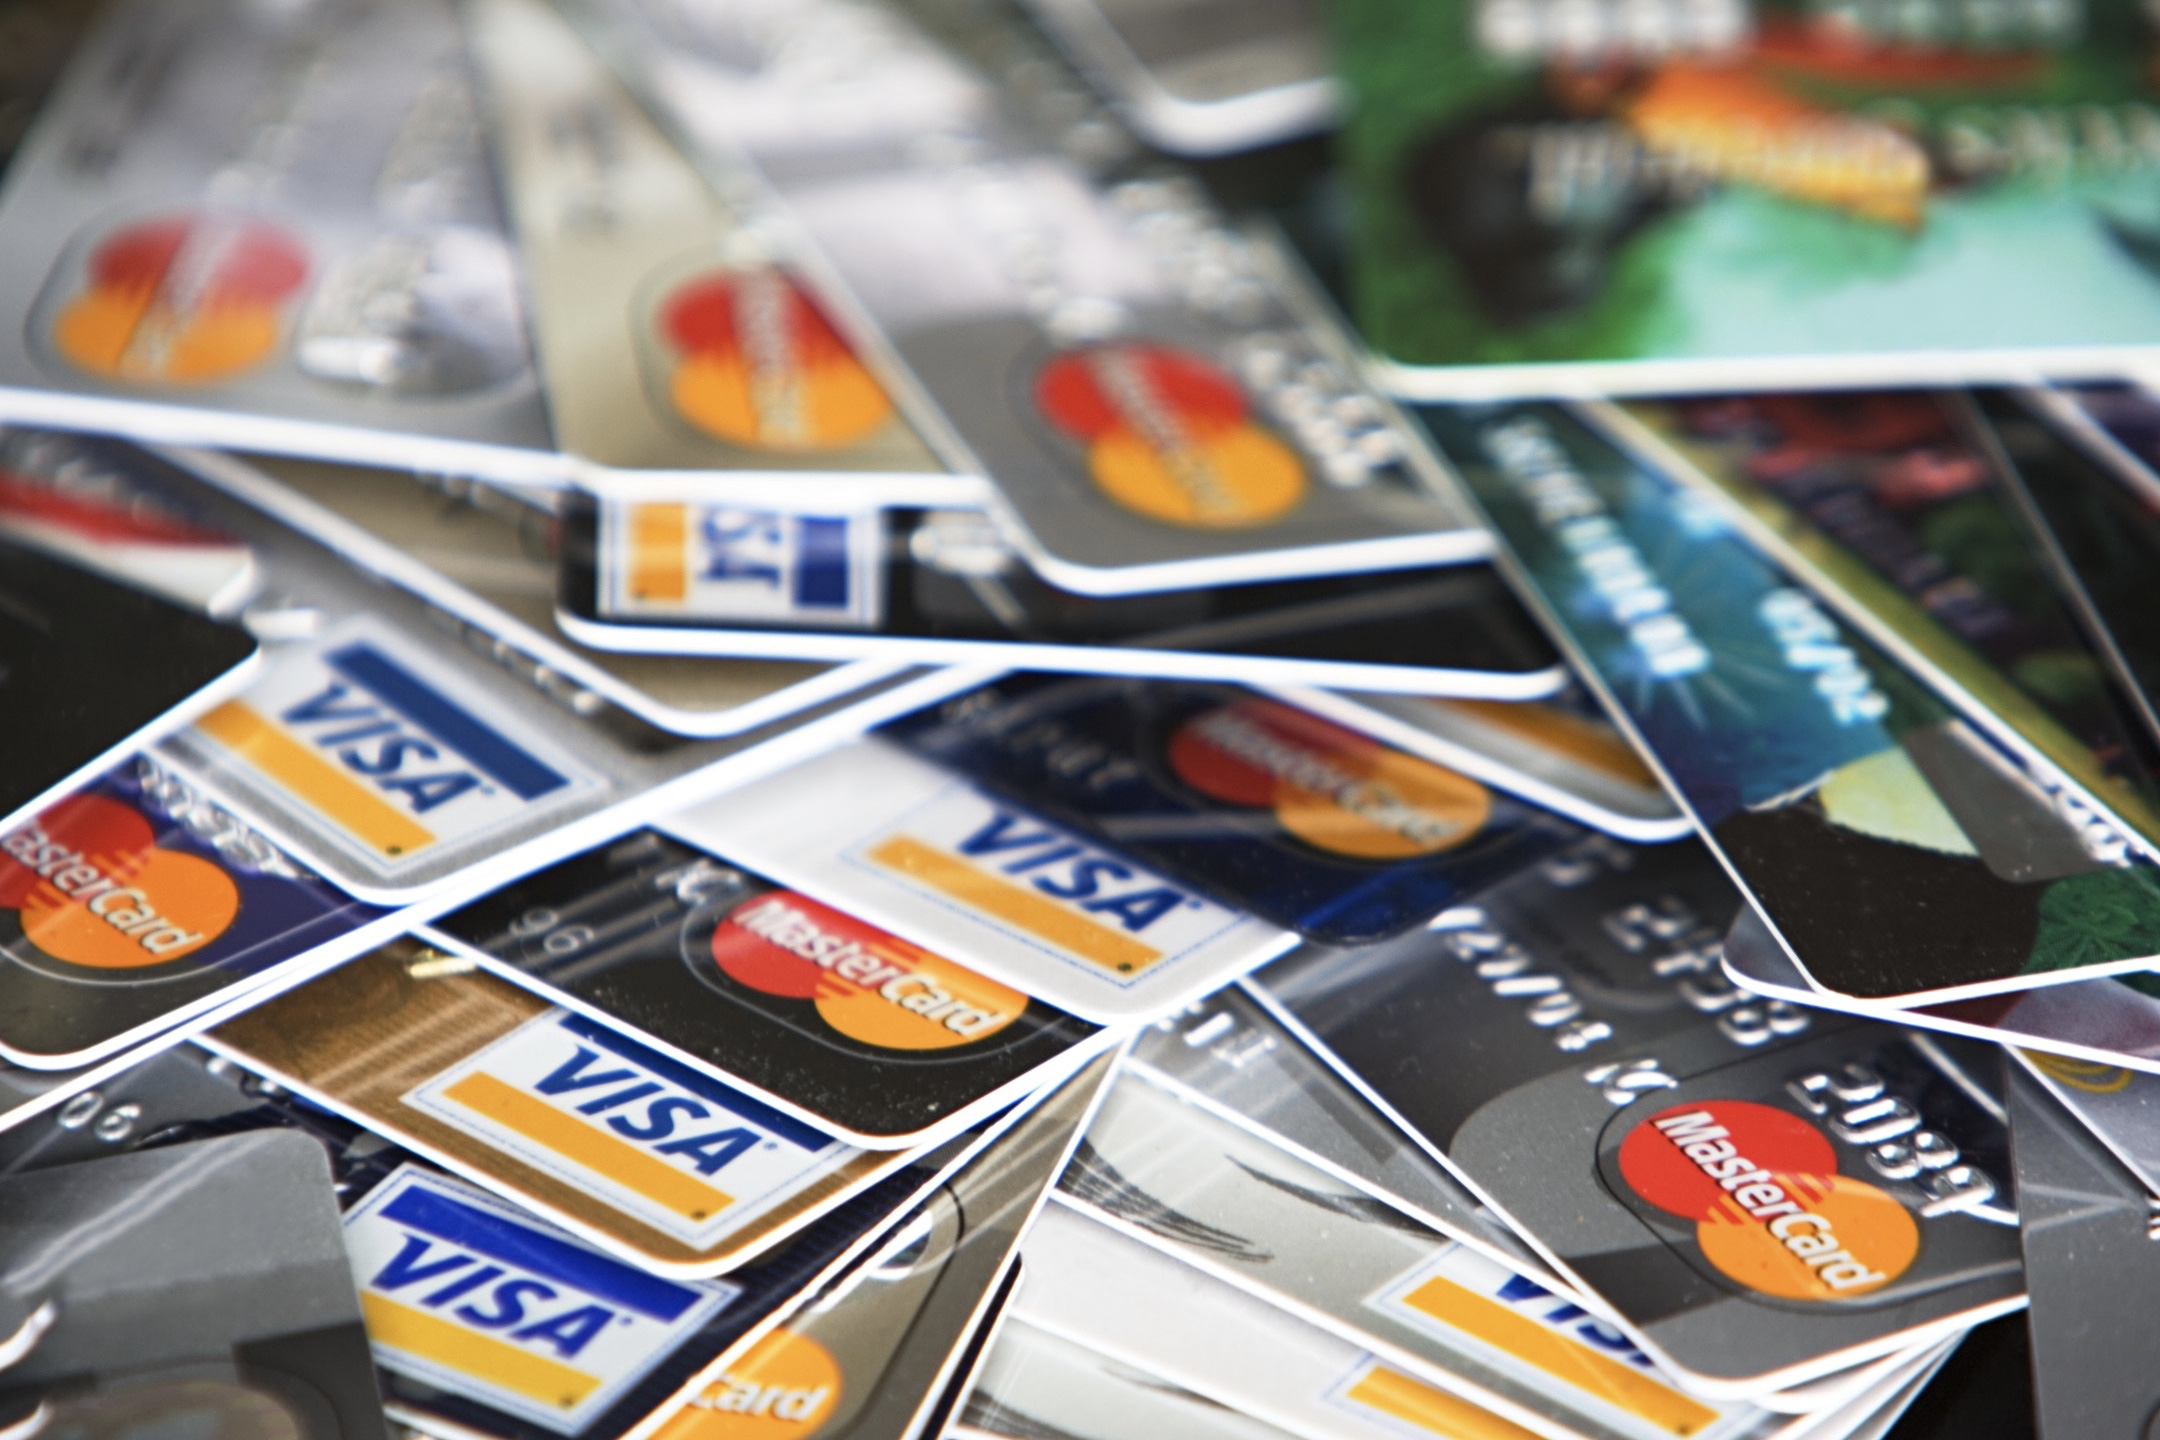 Biggest debt traps in South Africa 1